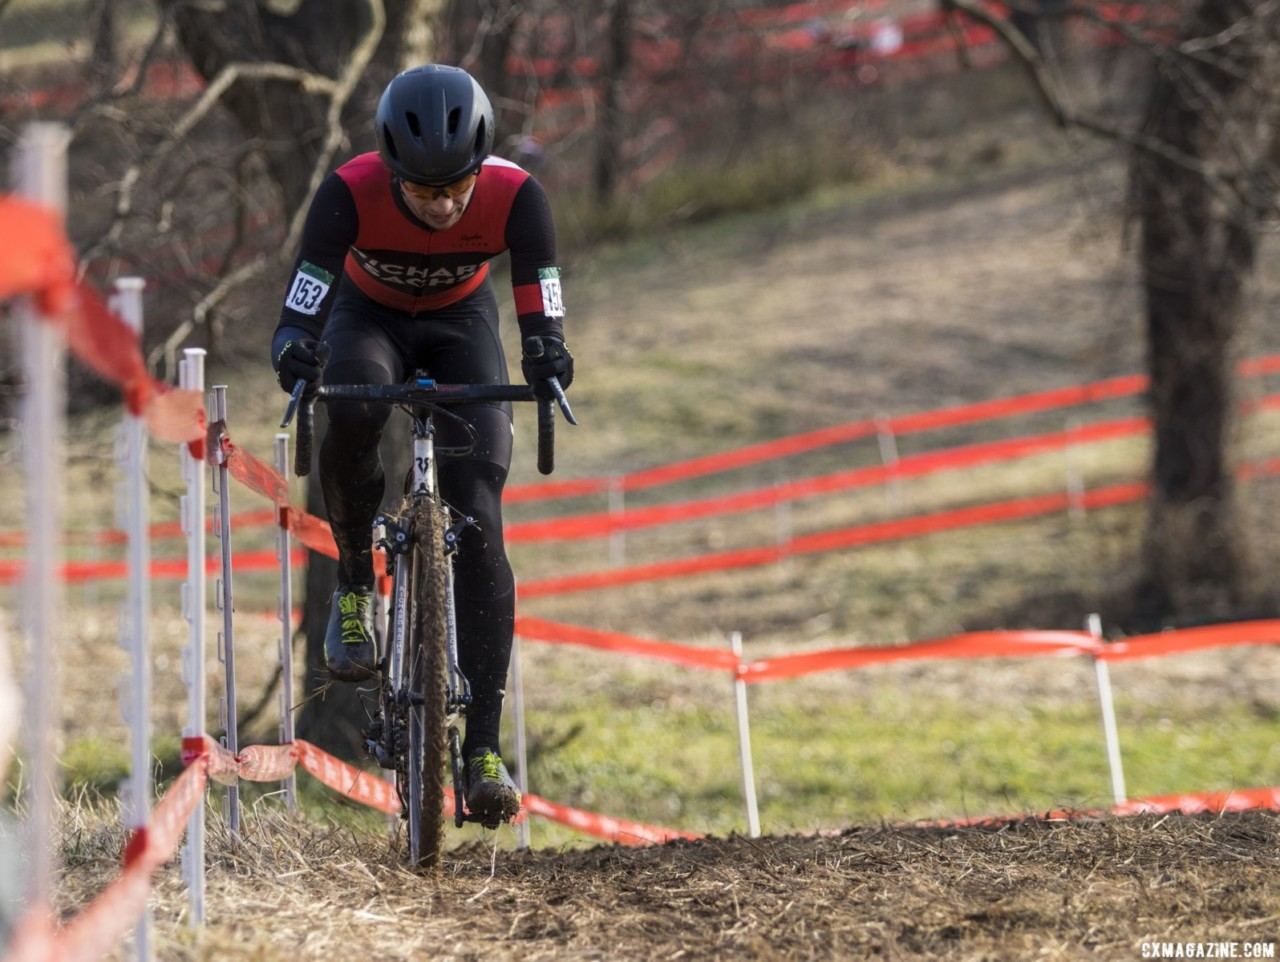 Dan Chabanov won the Baby Masters race at Louisville Nationals. Masters Men 30-34. 2018 Cyclocross National Championships, Louisville, KY. © A. Yee / Cyclocross Magazine